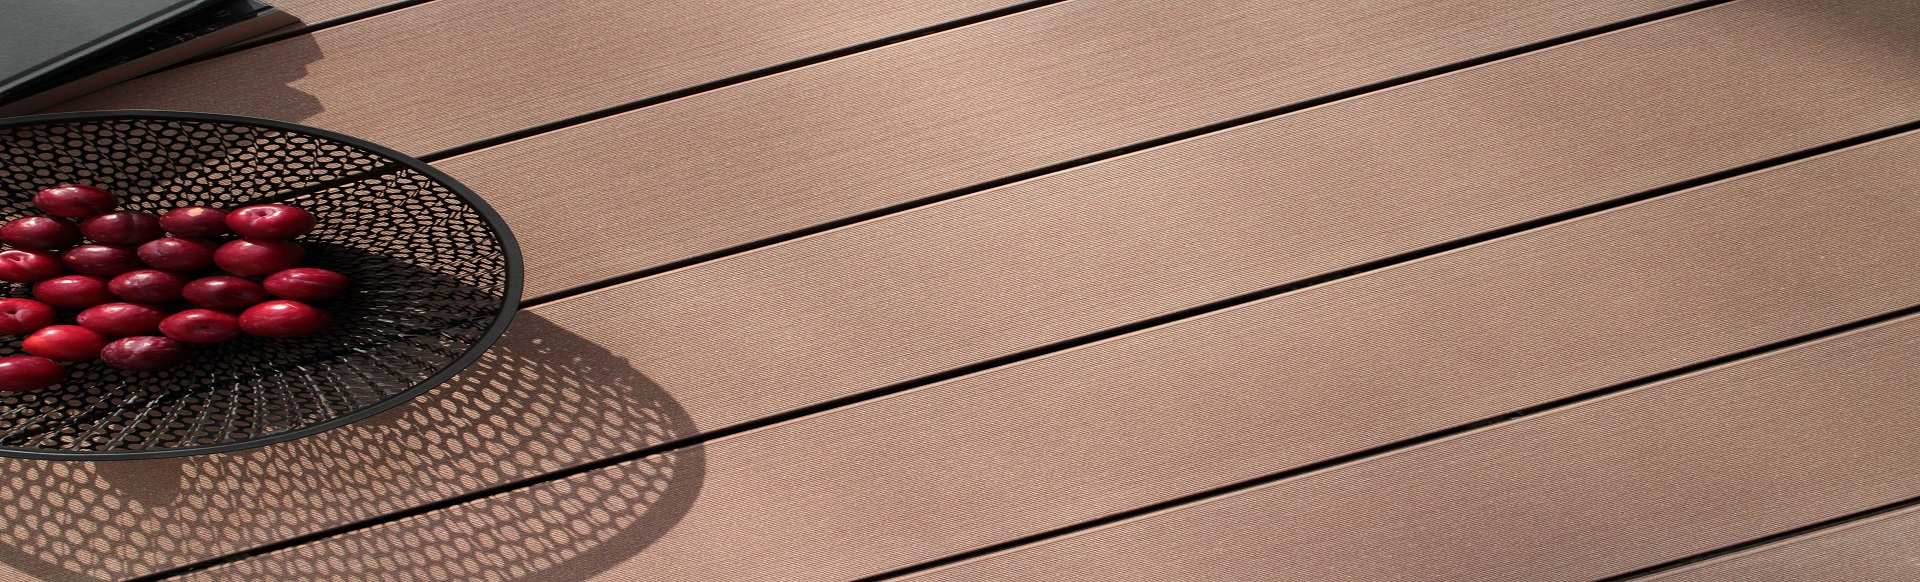 Composite wood plastic decking